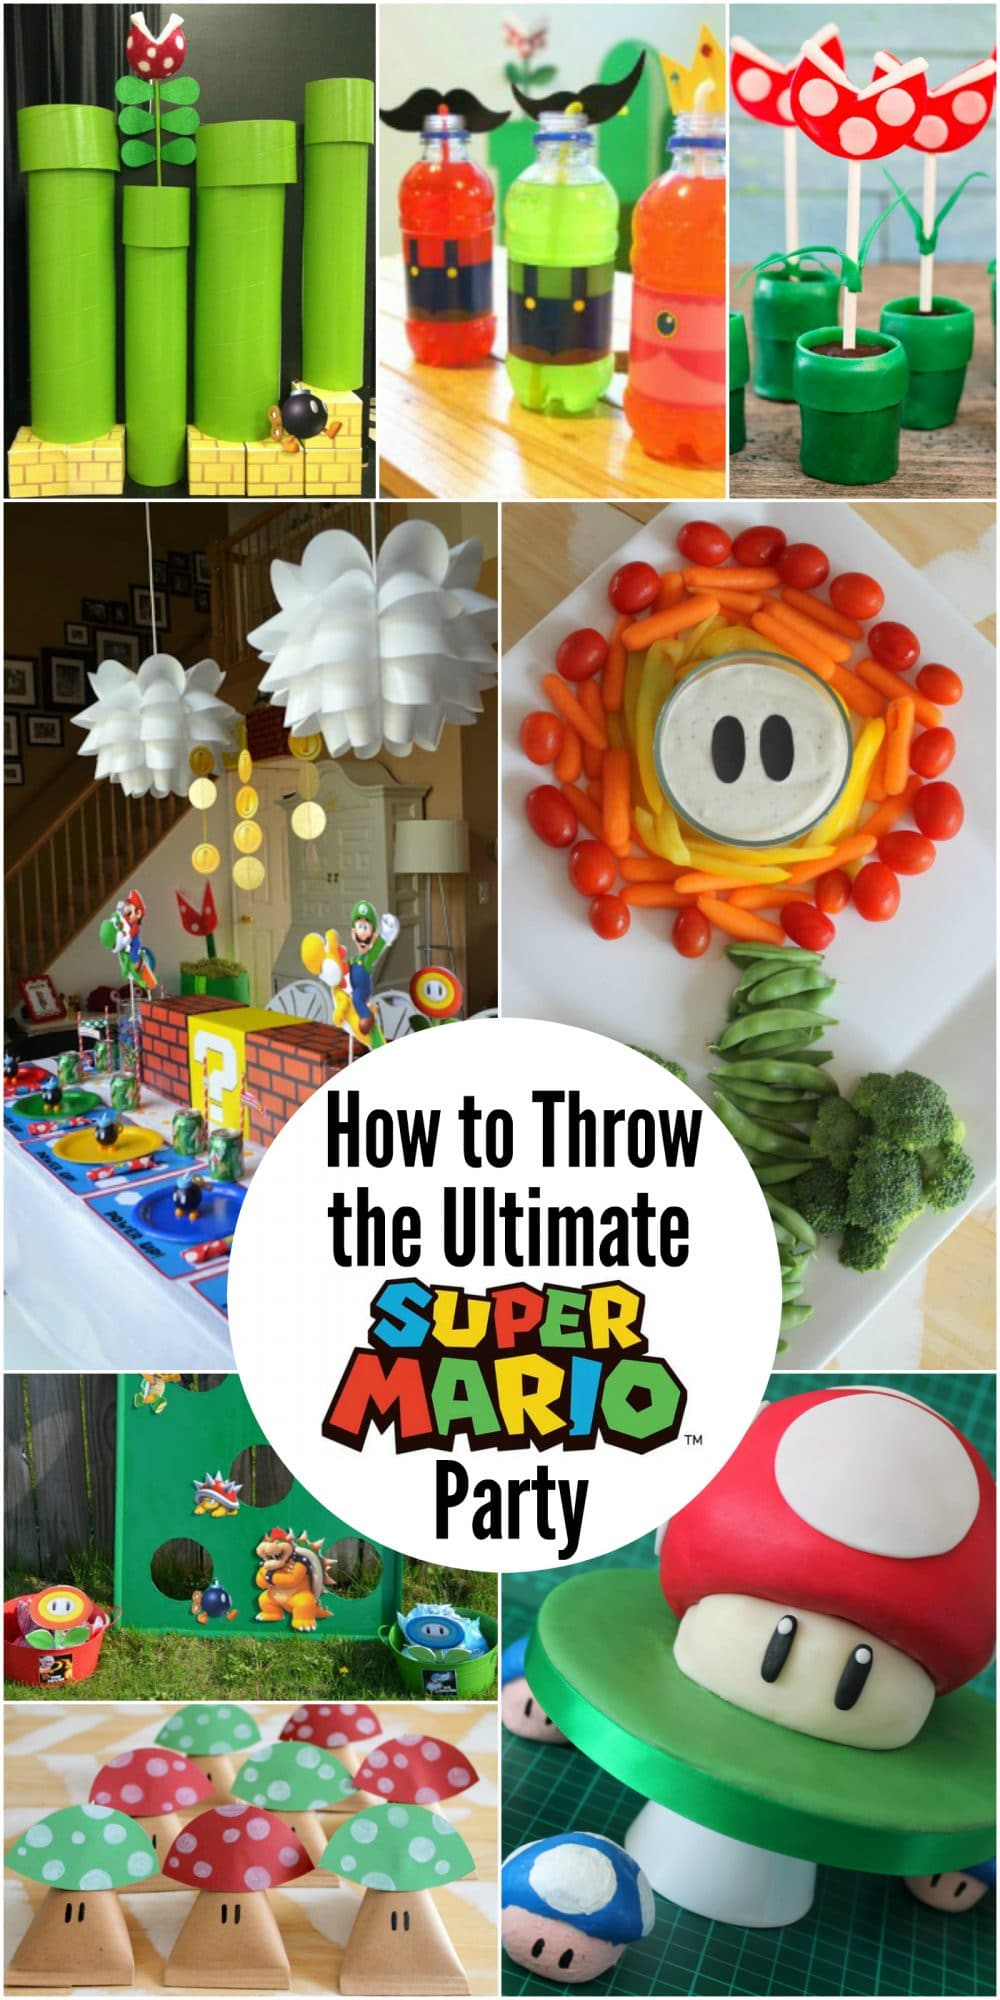 How to Throw the Ultimate Super Mario Party